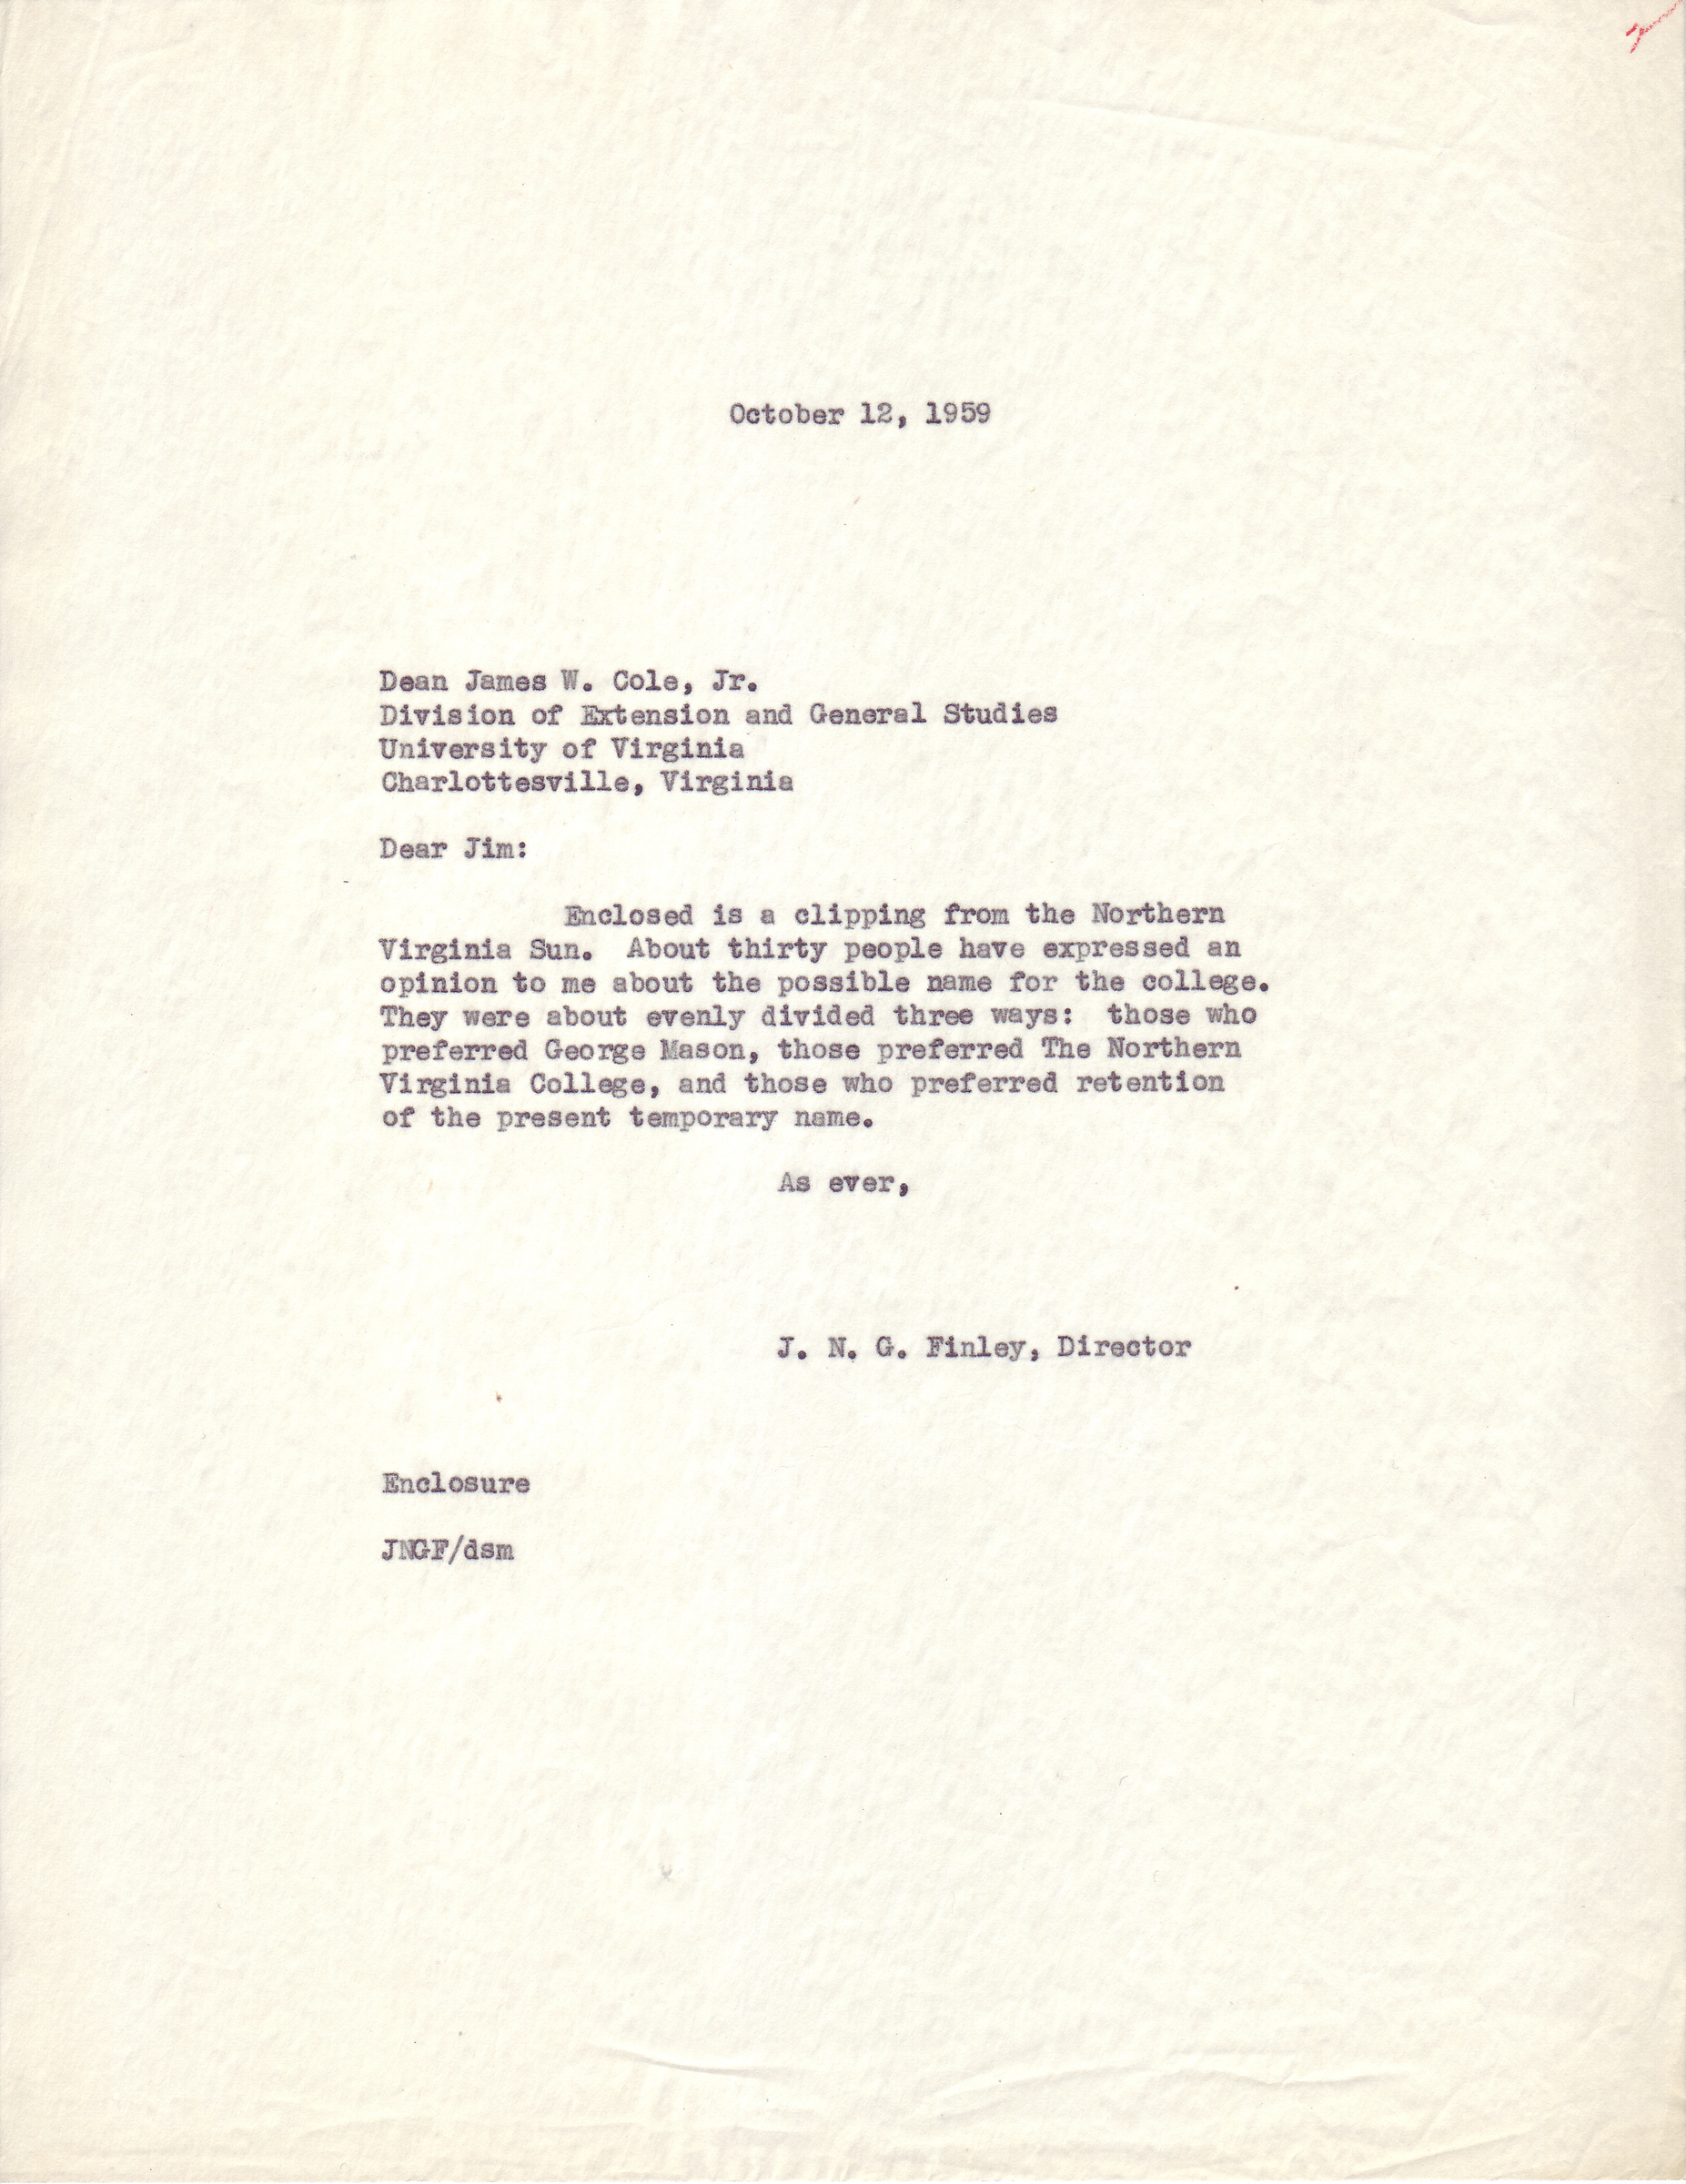 J.N.G. Finley to James W. Cole, Jr., October 12. 1959.